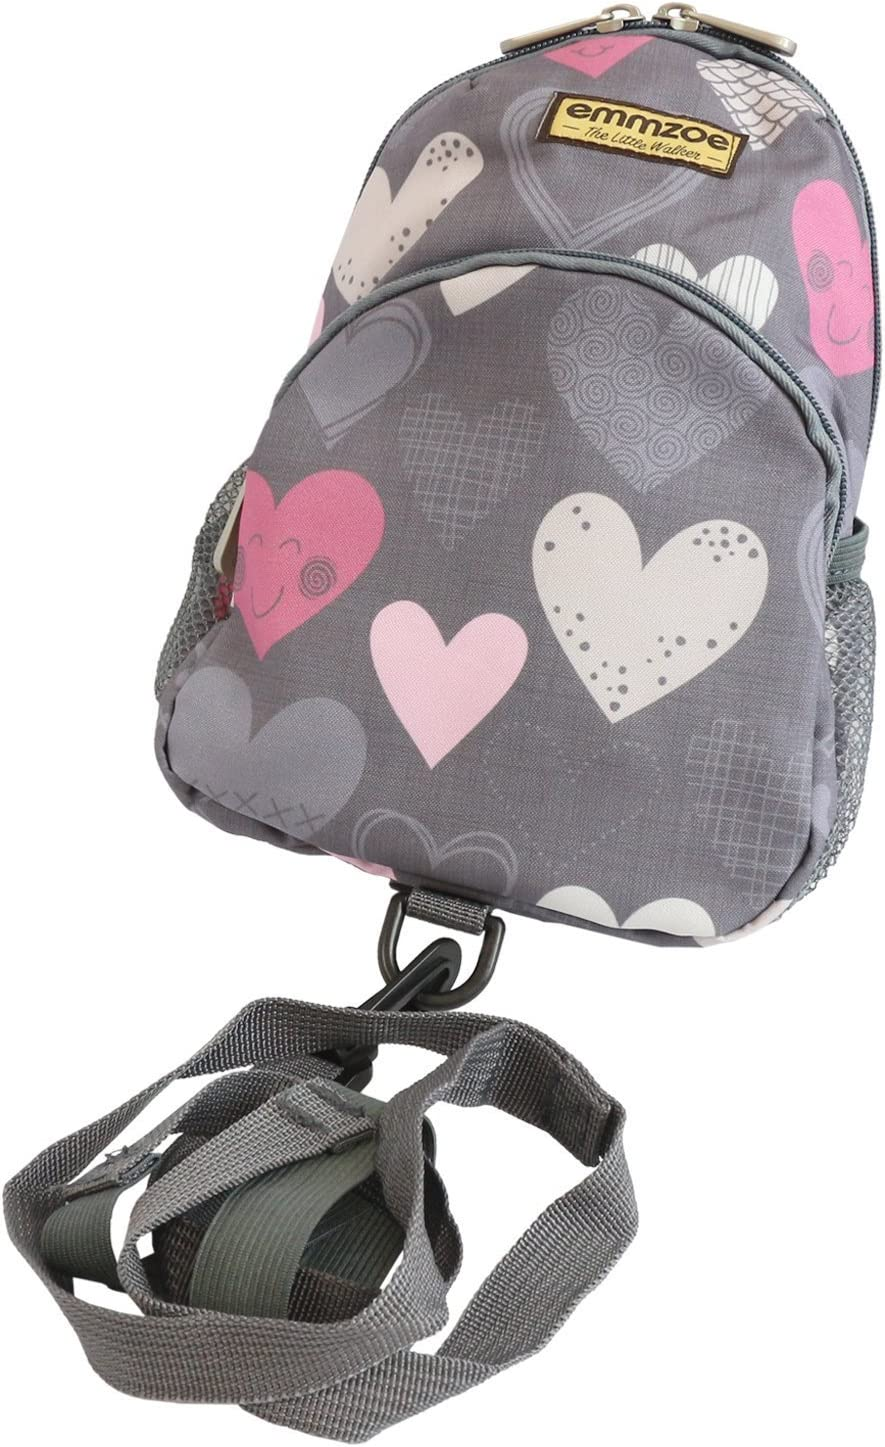 Emmzoe Little Walker Toddler Backpack with Detachable Safety Harness Leash - Lightweight Fits Snacks, Food, Toys (Gray Hearts)